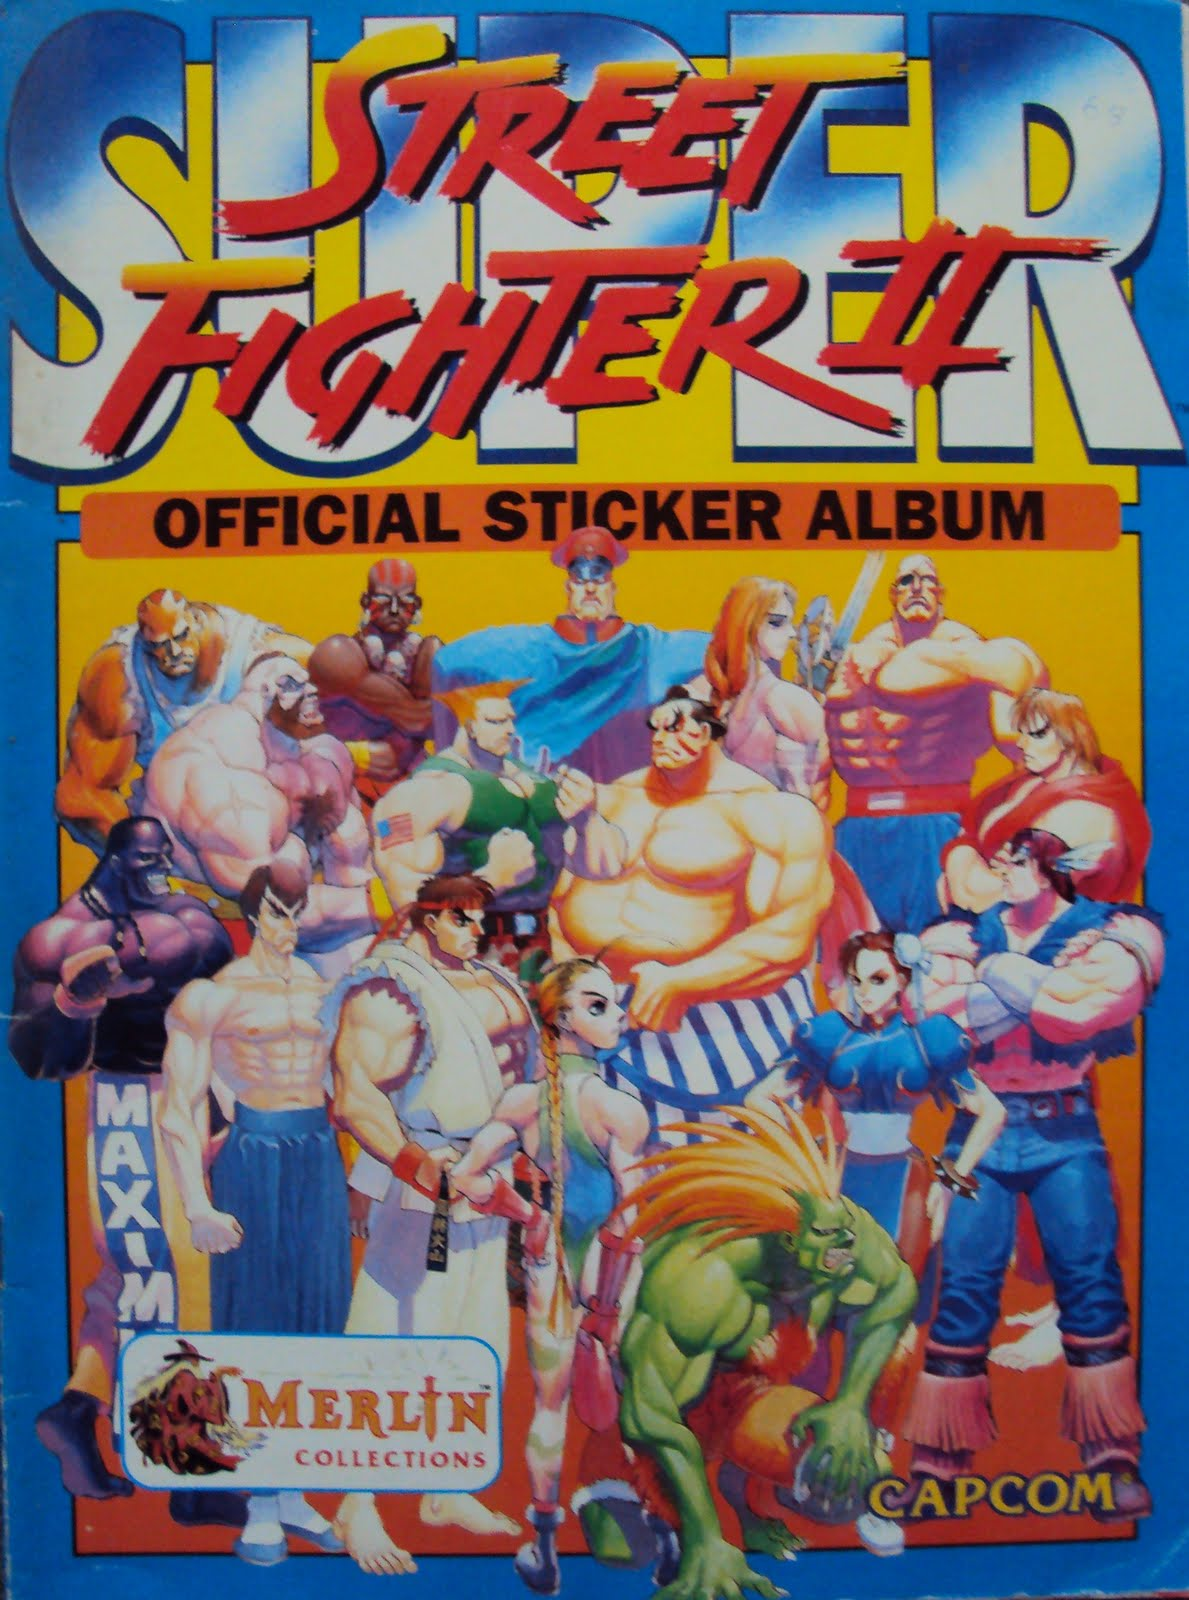 Not long afterwards capcom released super street fighter 2 and merlin were hot on their heels with the sticker book this super sf2 release introduced us to